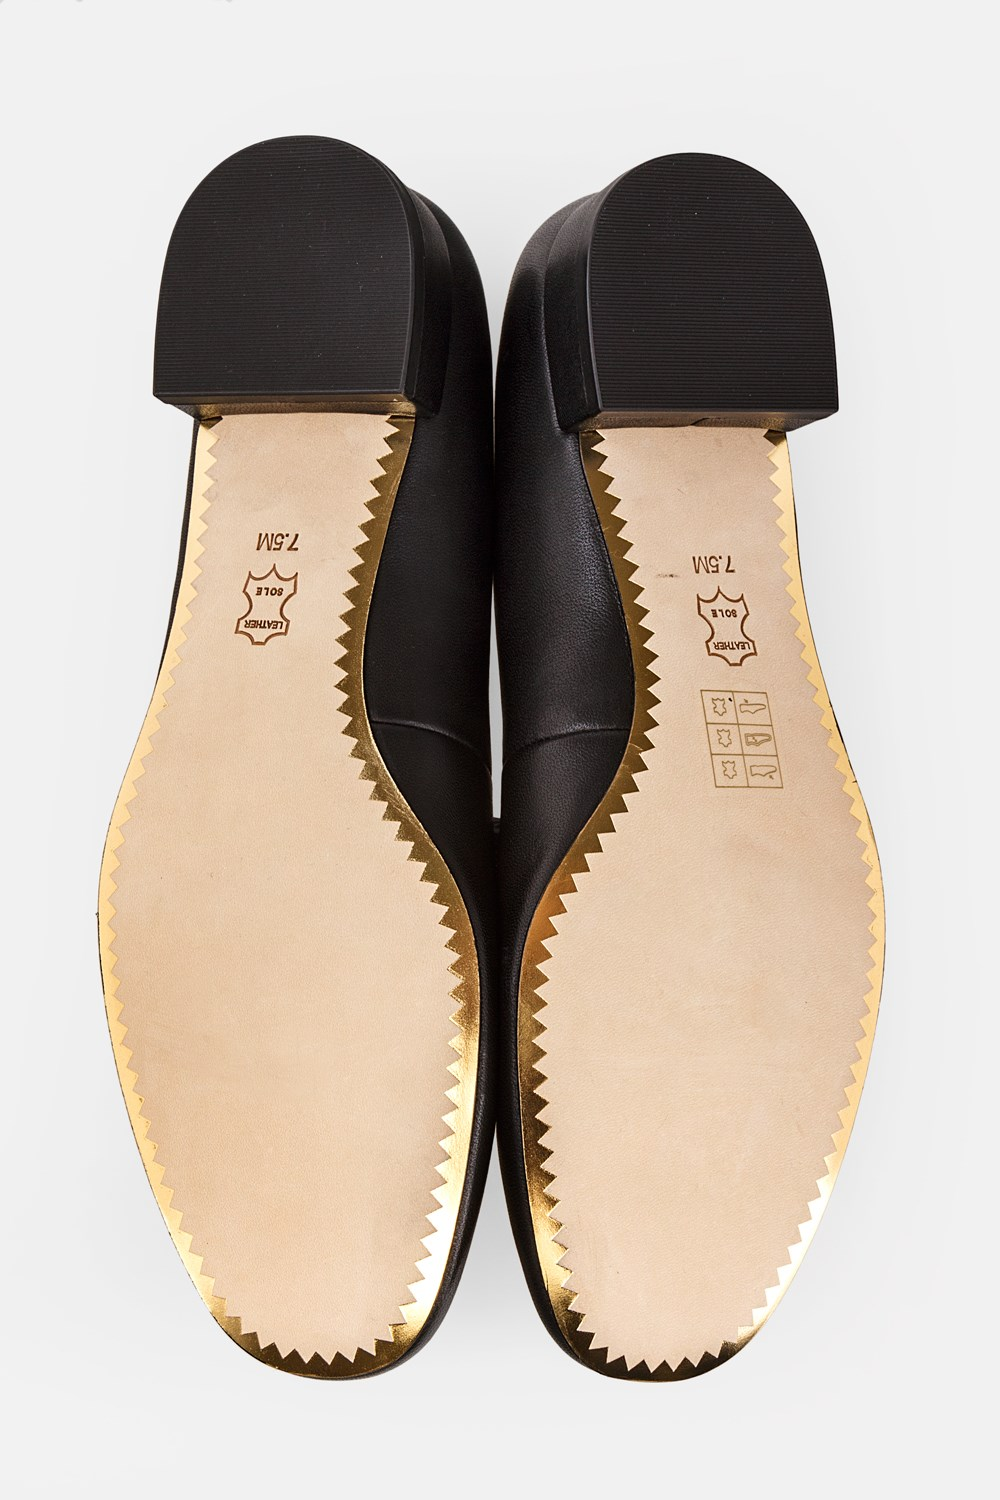 21e2b78d7bfc Black Leather Chelsea Heeled Ballet Flats / Size: 7.5 M (37.5) - Fit: 38,  Pumps, Low Heeled, Shoes, Starbags Products, Starbags.gr